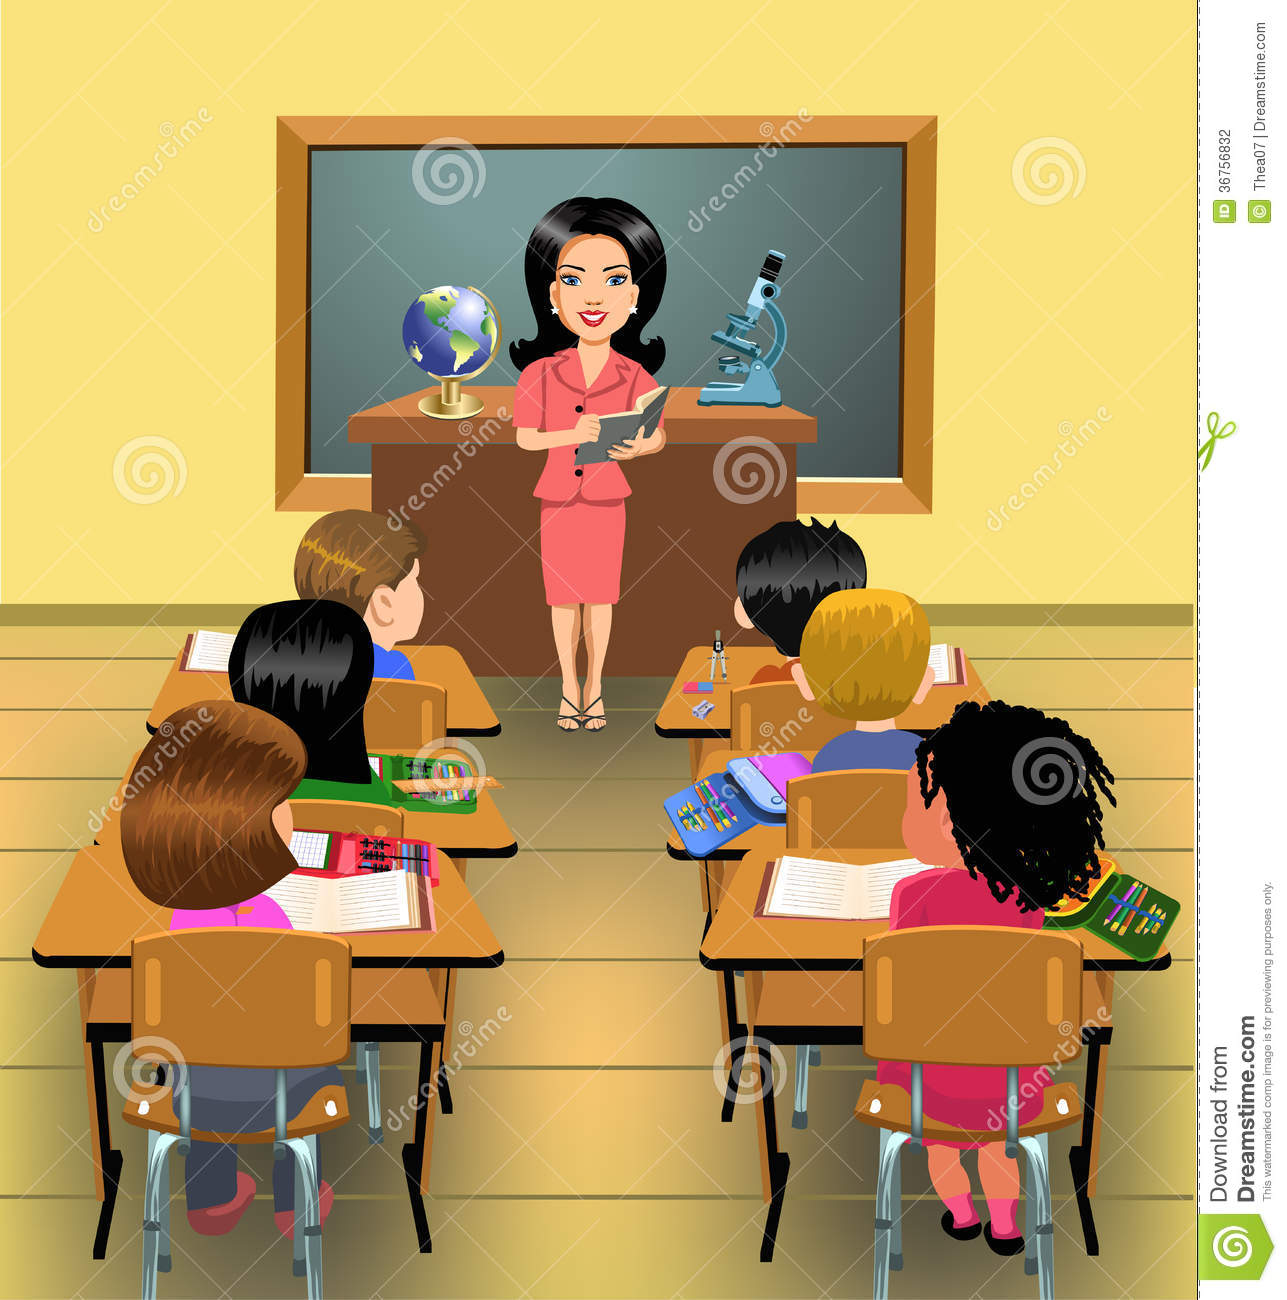 Teacher modeling a lesson clipart clipart freeuse Chapter Two: The Teacher in the Classroom and Community ... clipart freeuse